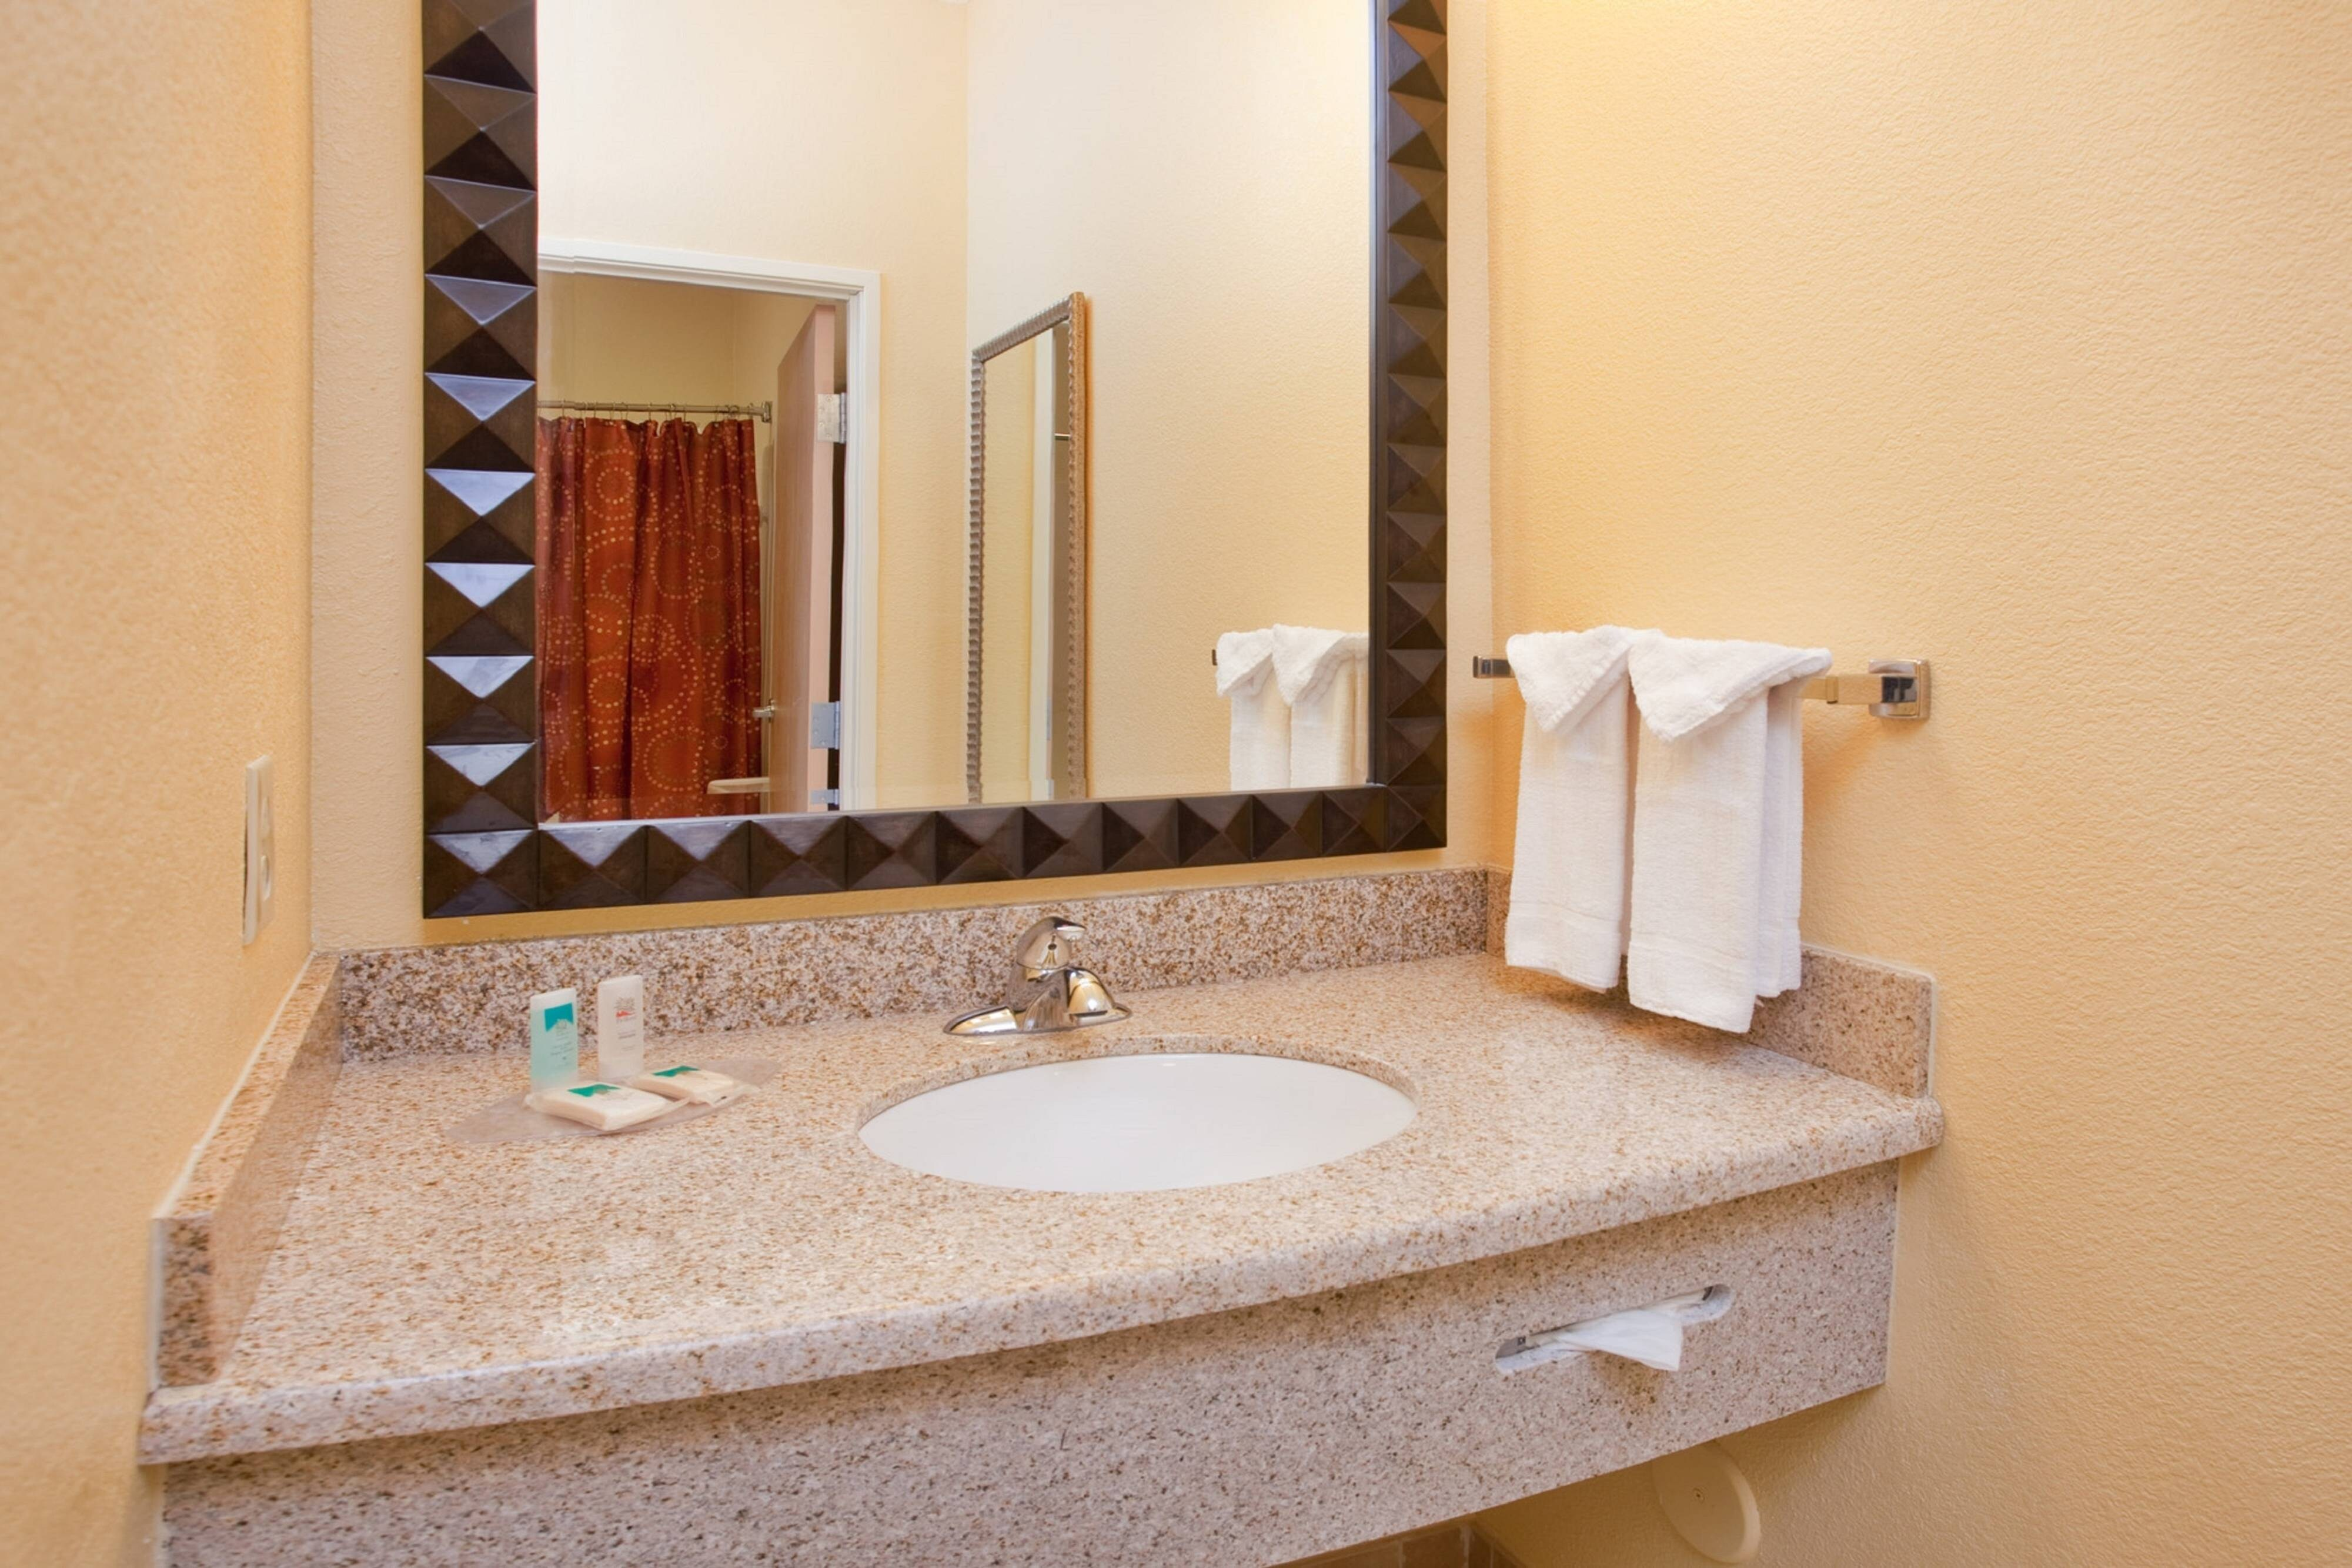 Hotel Guest Room Bathroom